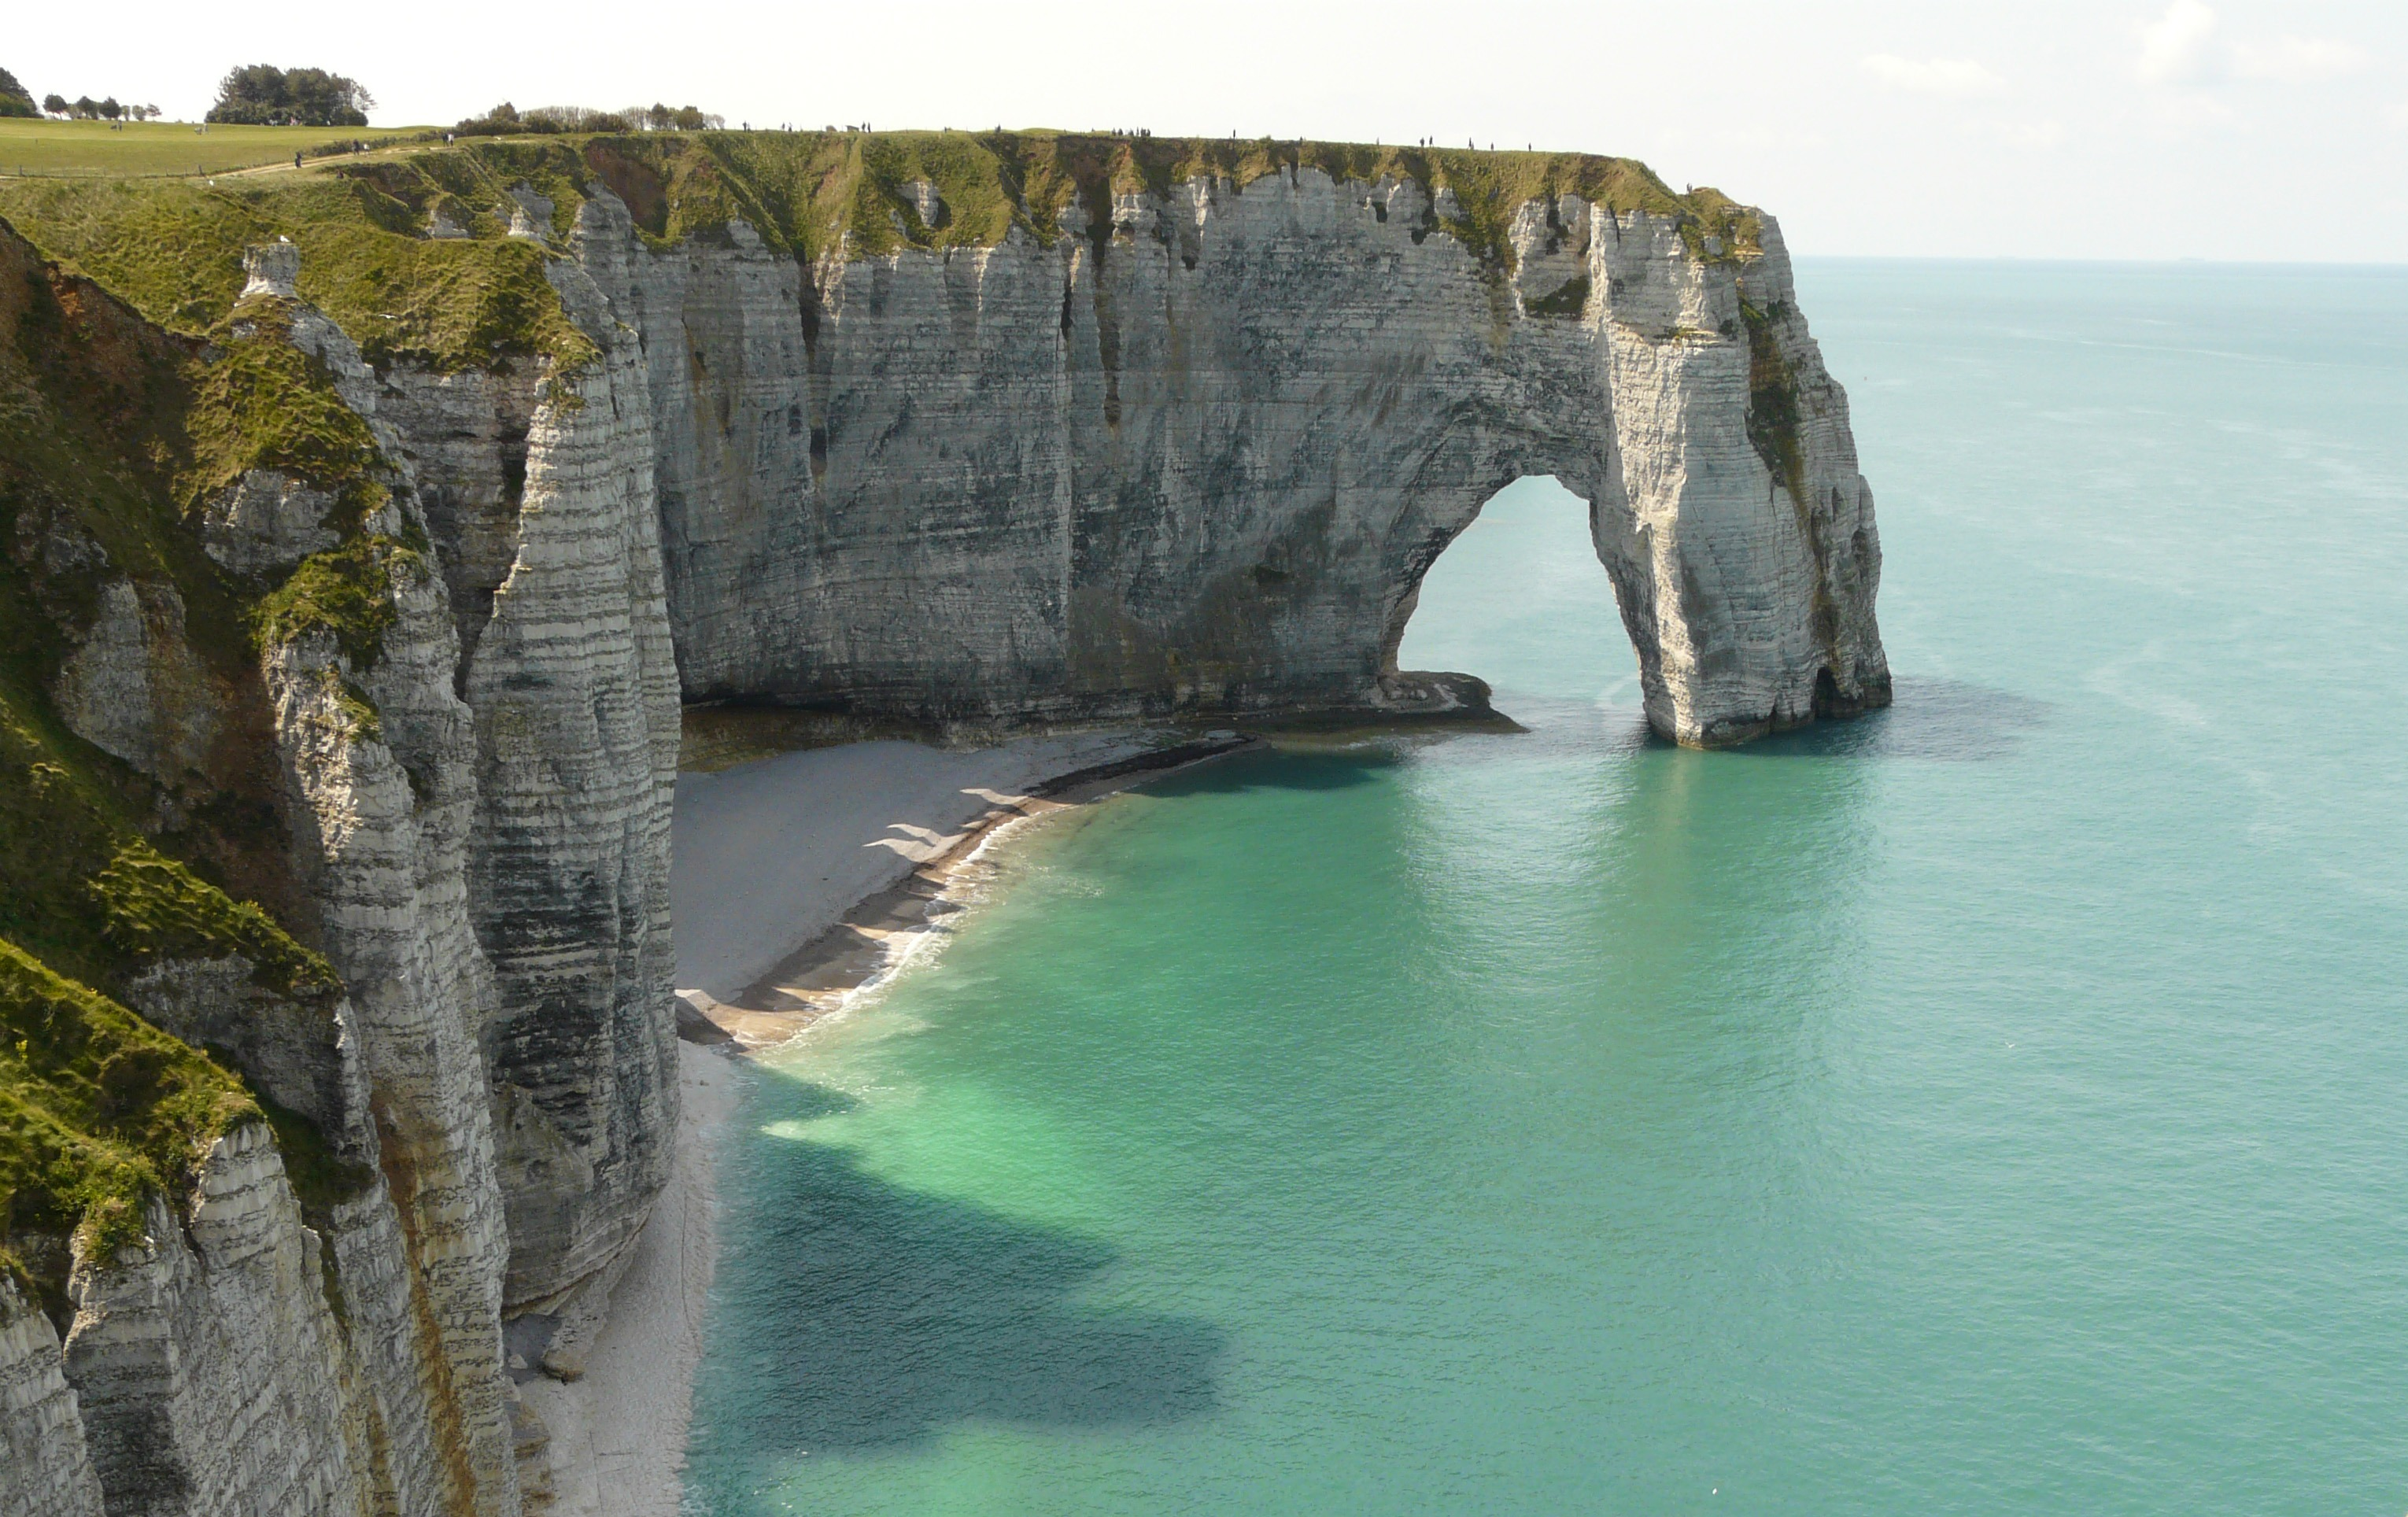 Cliffs Etretat Normandy France Free Image